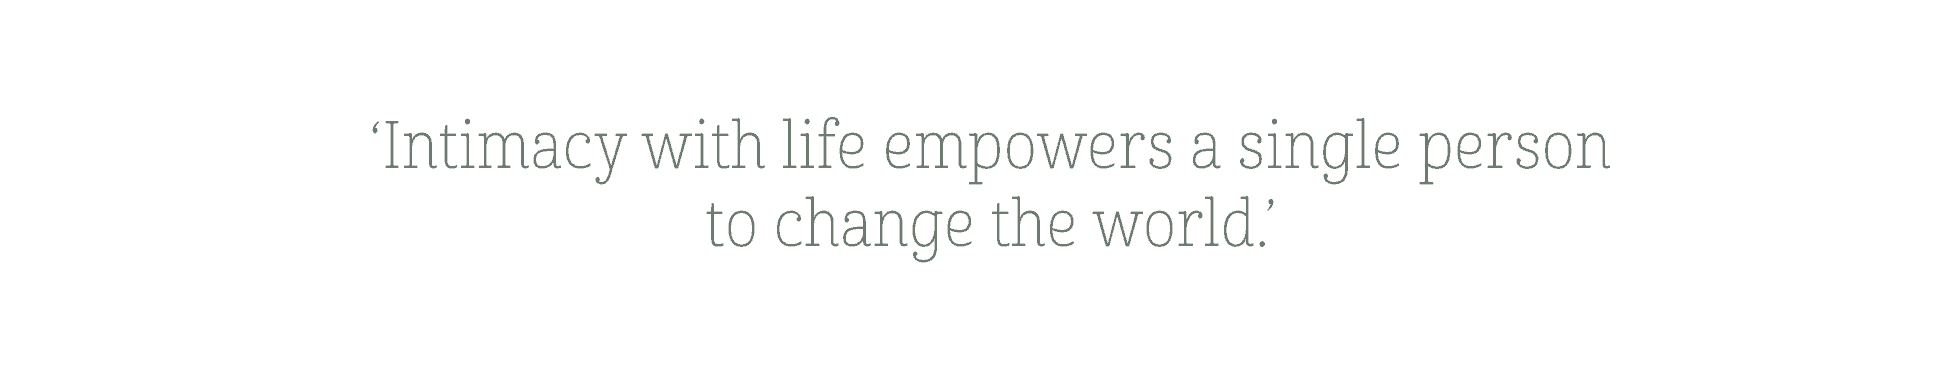 Intimacy with life empowers a single person to change the world